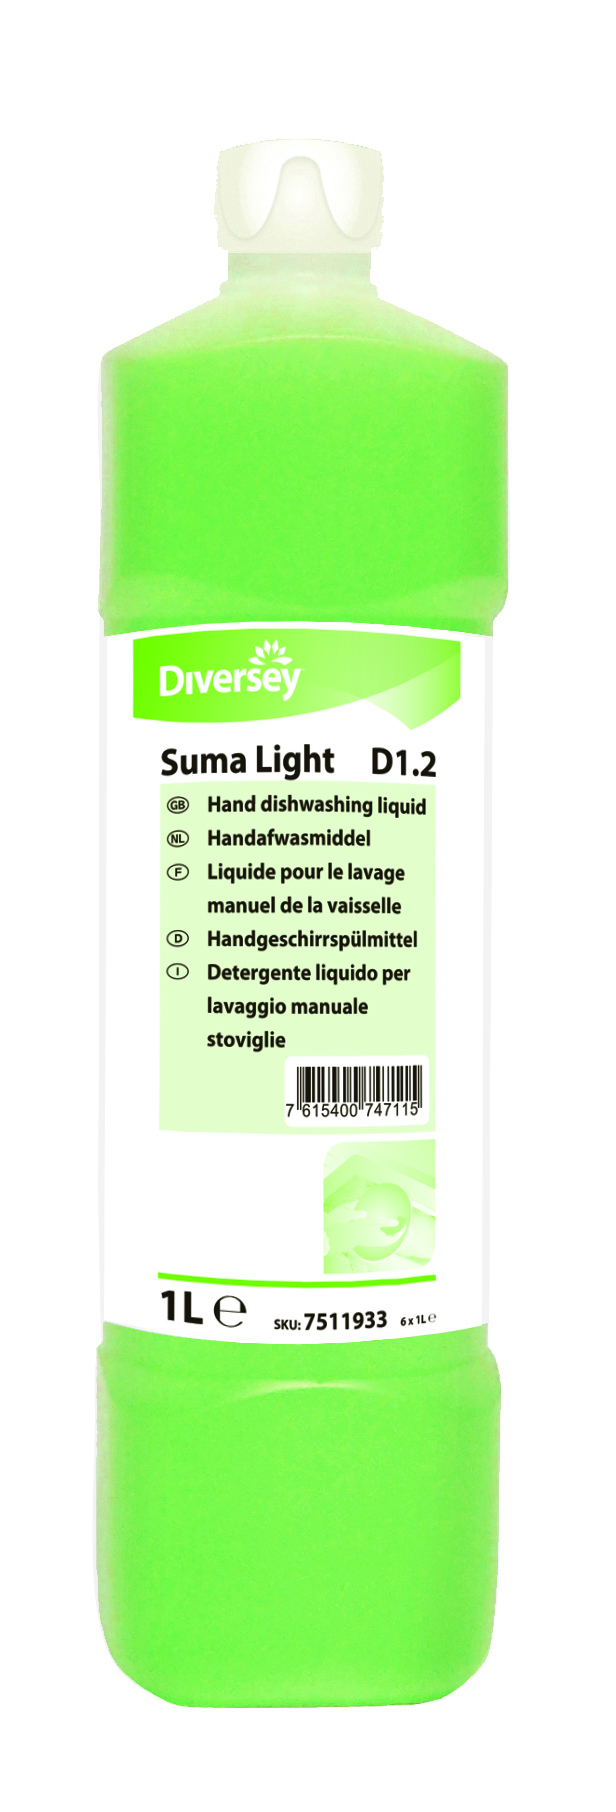 Suma Light D1.2 Washing Up Liquid - 6 x 1L